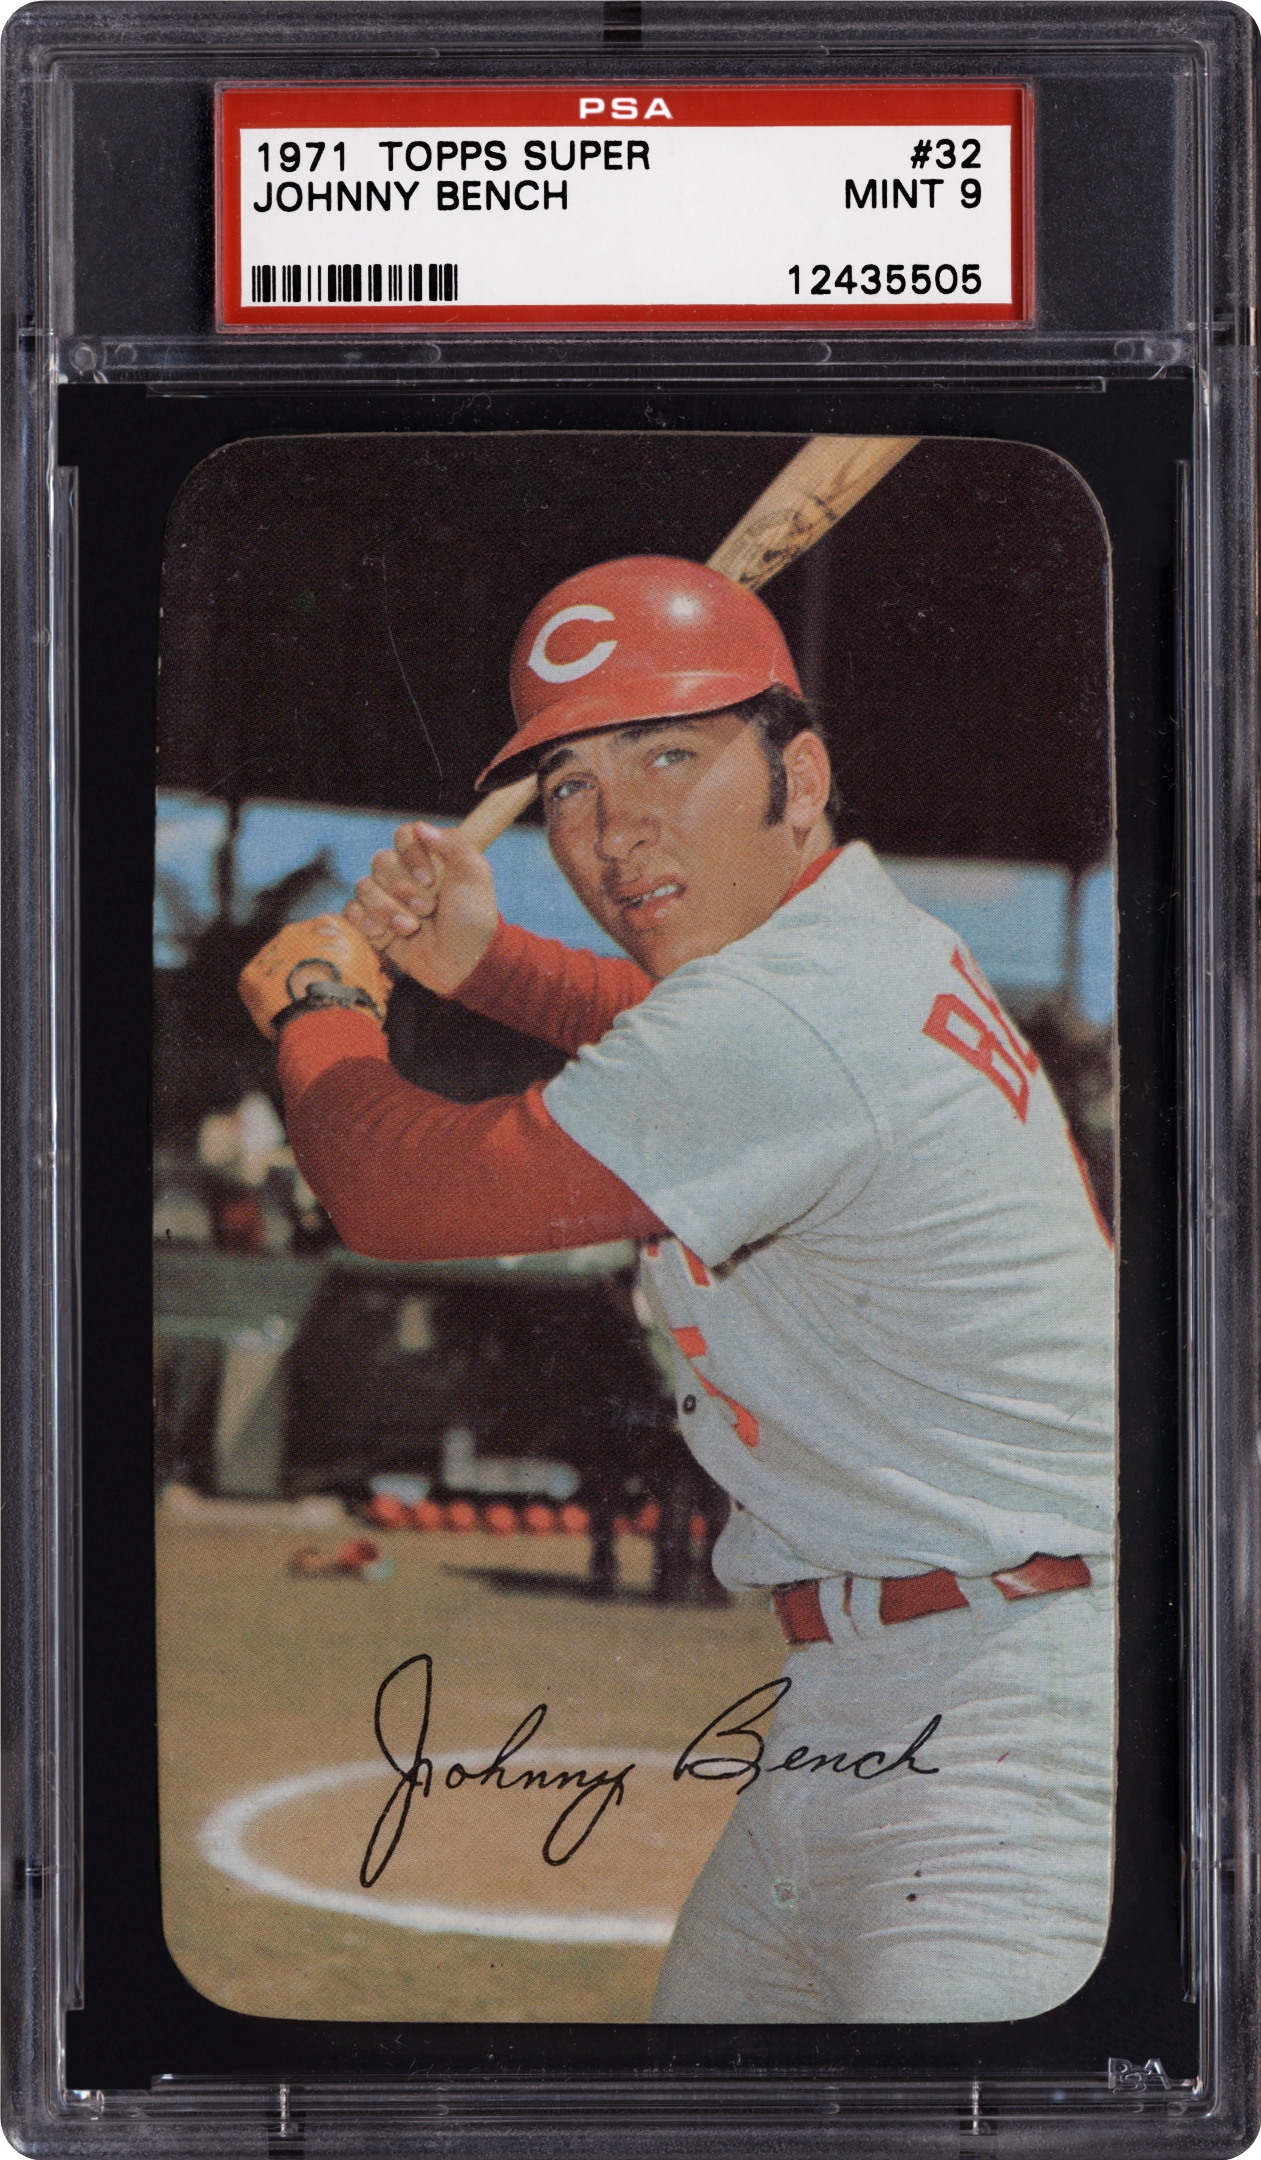 1971 Topps Super Johnny Bench Psa Cardfacts